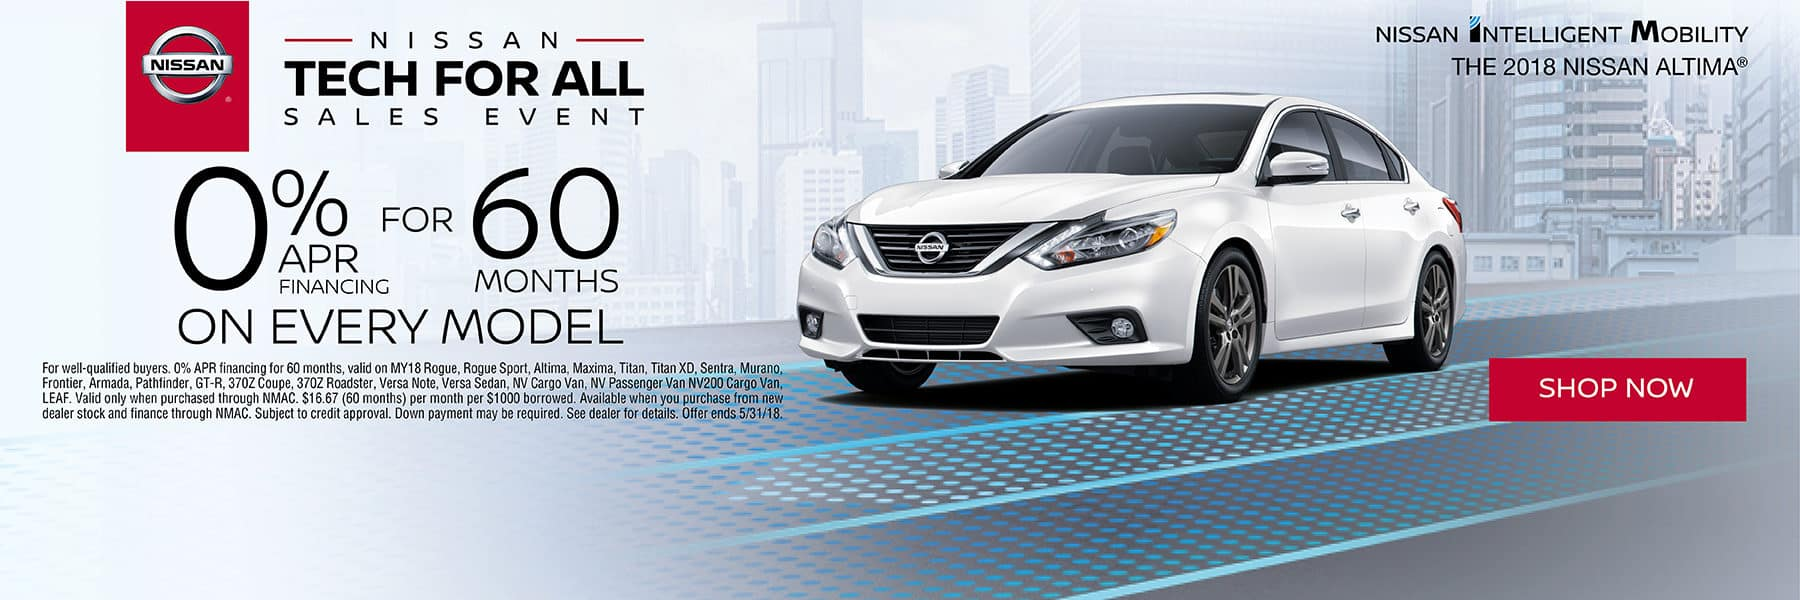 Time to Upgrade to a New Nissan with 0% for 60 months on all New Nissan Models during the Nissan Tech for All Sales Event at Berman Nissan of Chicago!